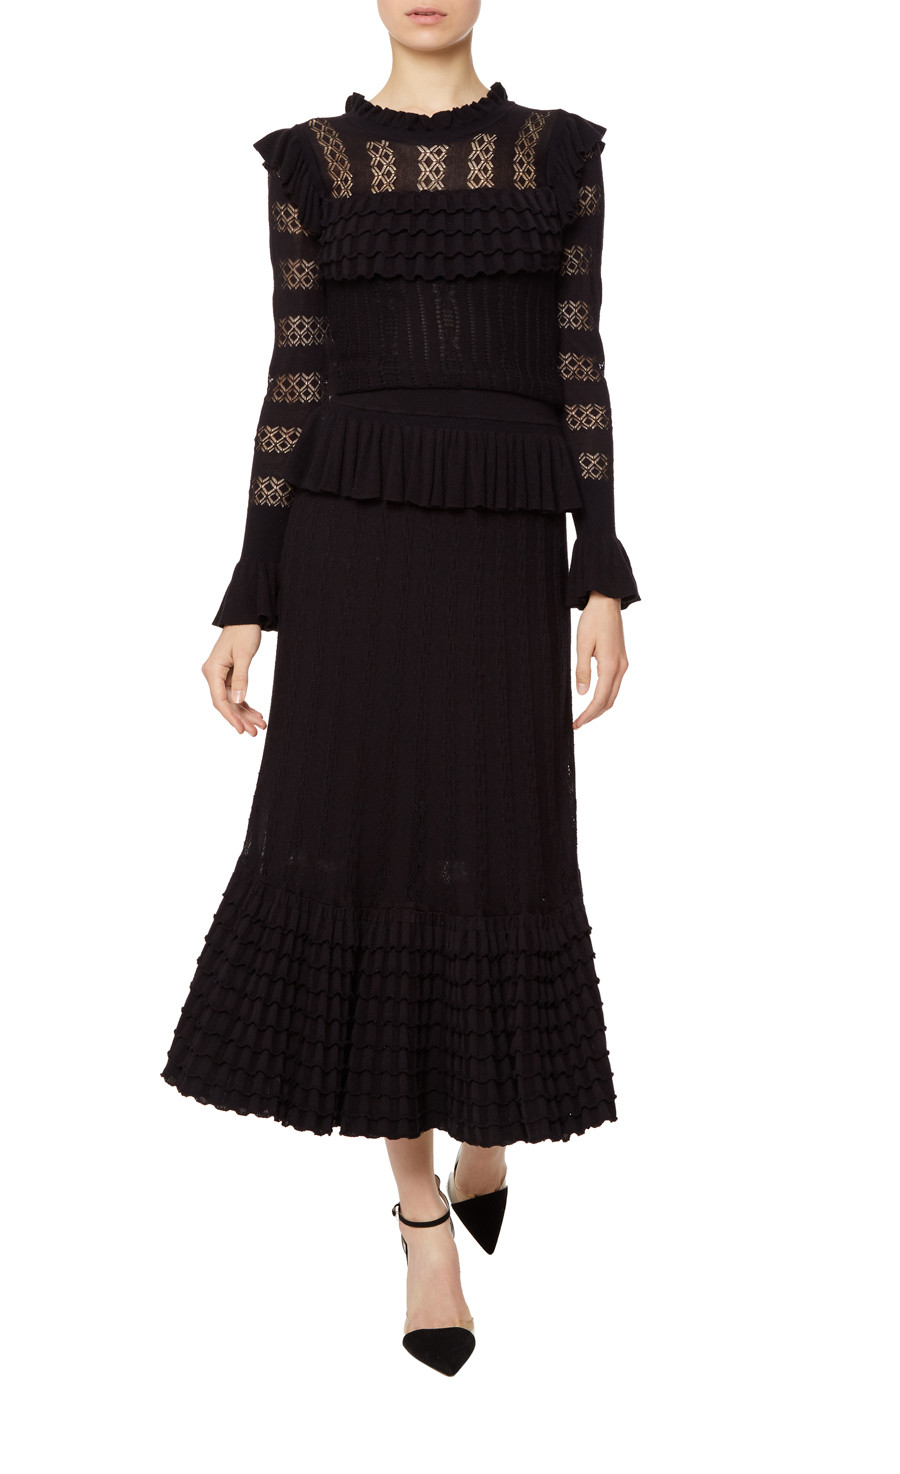 Temperley London Cypre Dress